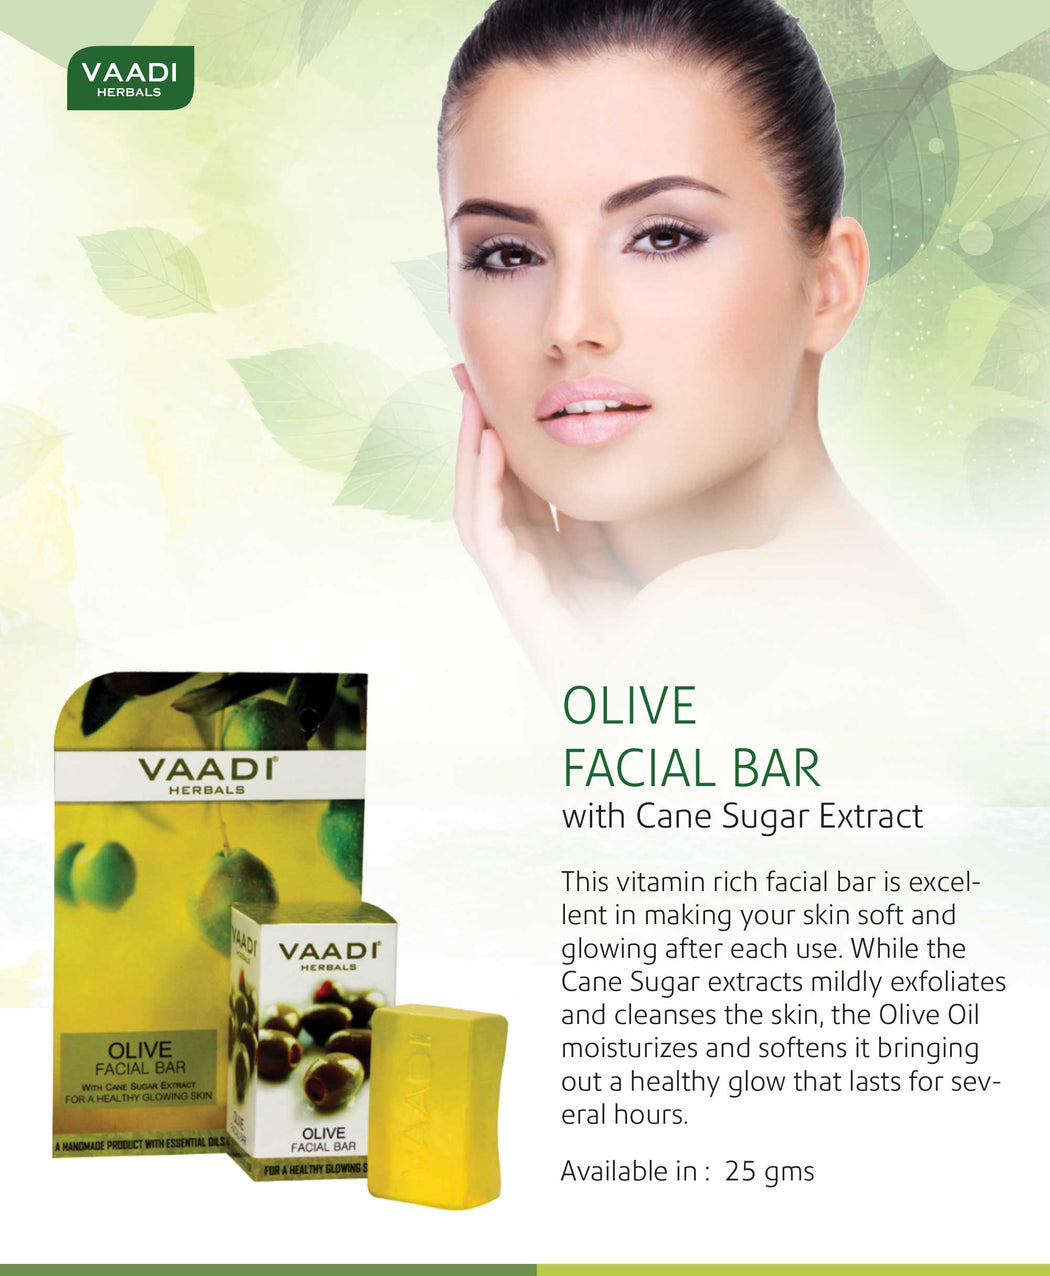 Pack of 6 Olive Facial Bars with Cane Sugar Extract ( 25 gms x 6)